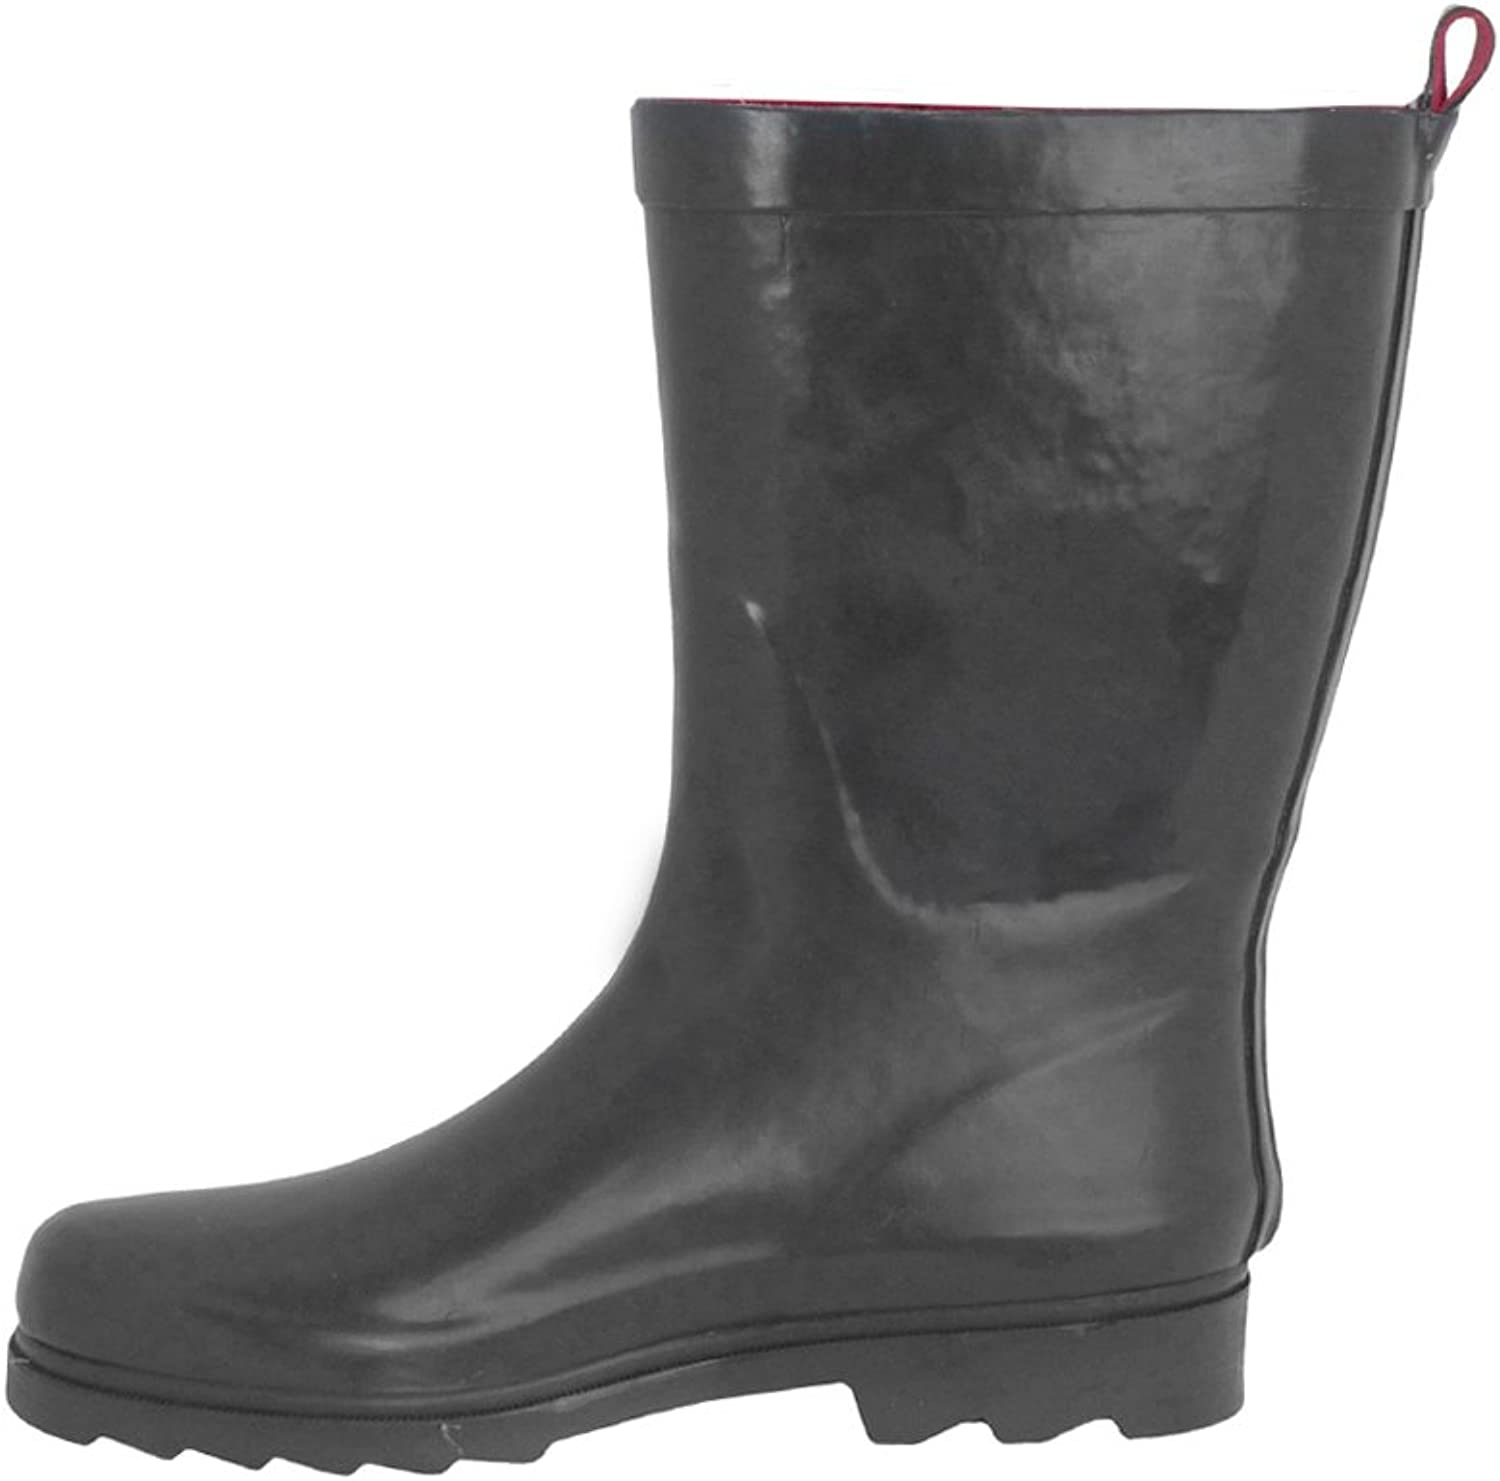 Capelli New York Ladies Shiny Short Rubber Rain Boot bluee